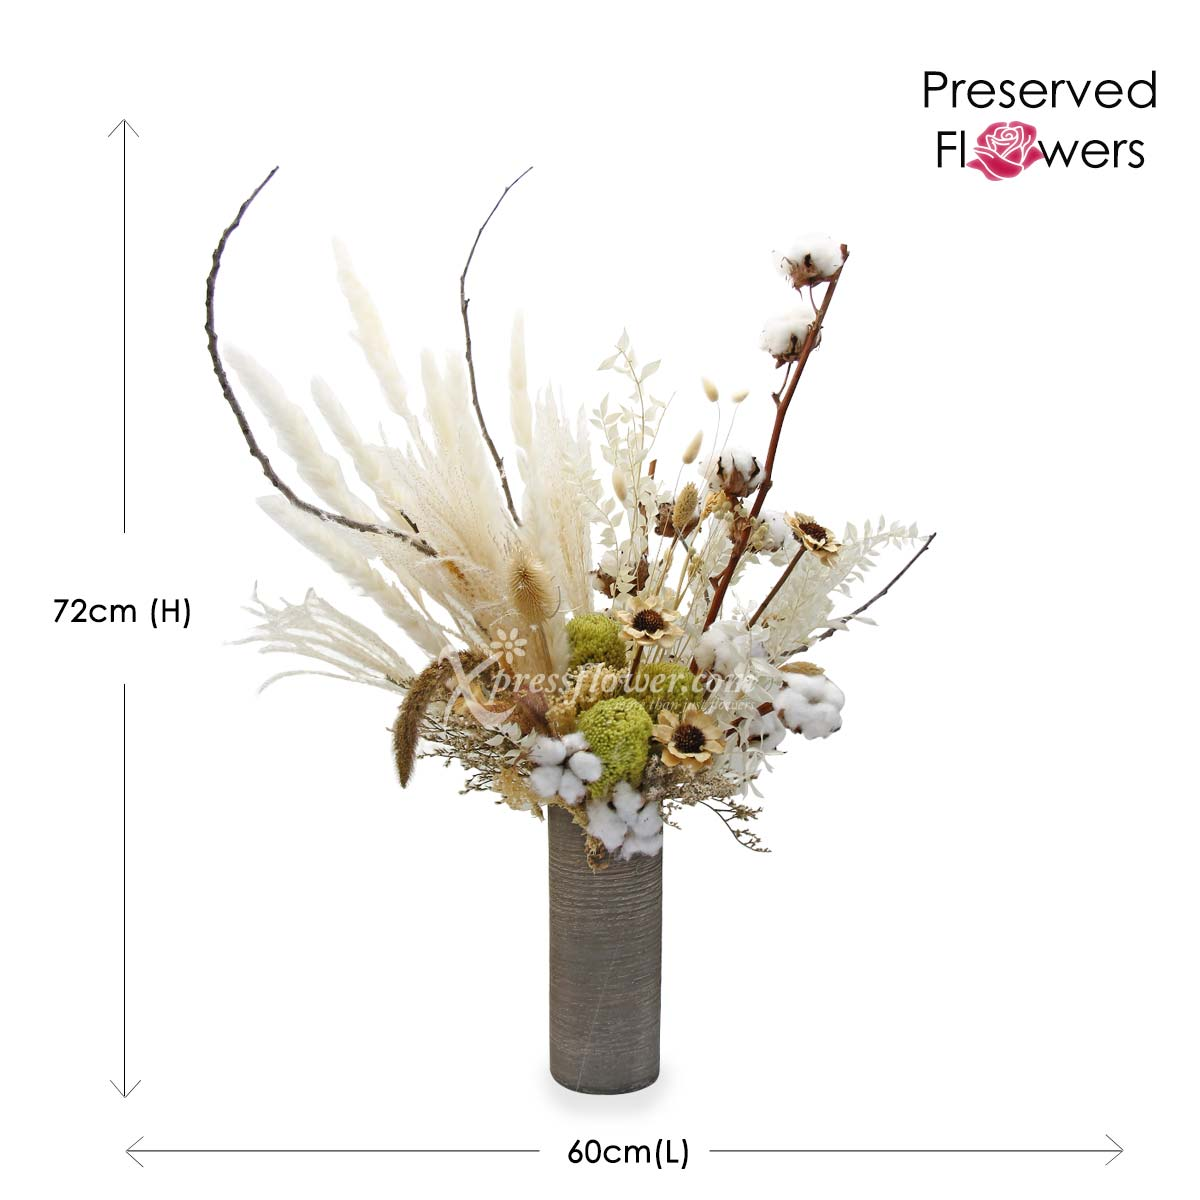 PR2107_Magnifique (Mixed Dried & Preserved Flowers)_B